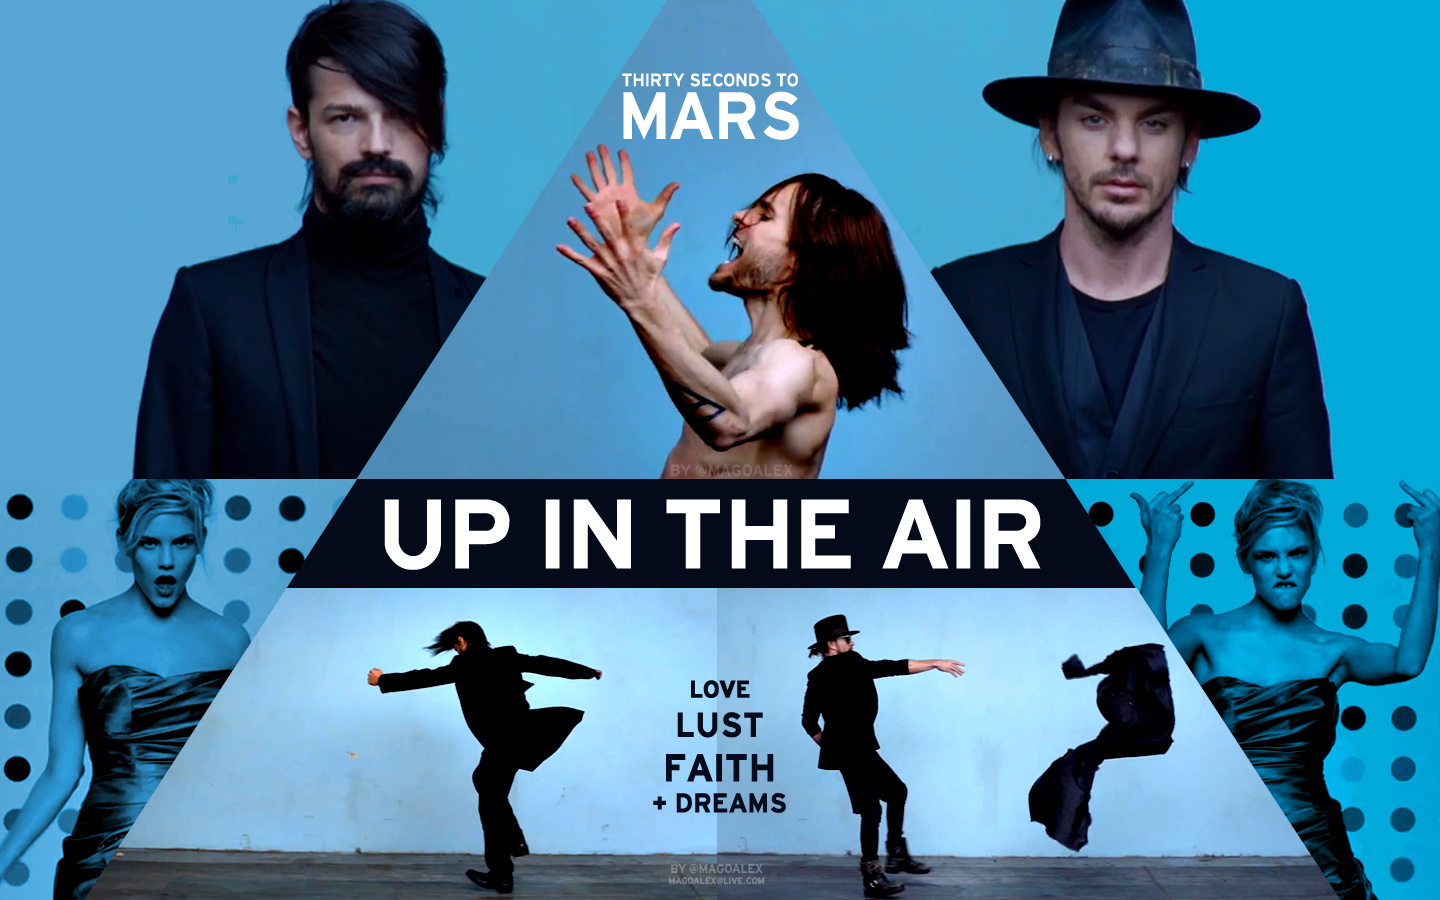 Up In The Air 30 Seconds To Mars 30 seconds to mars - up in the